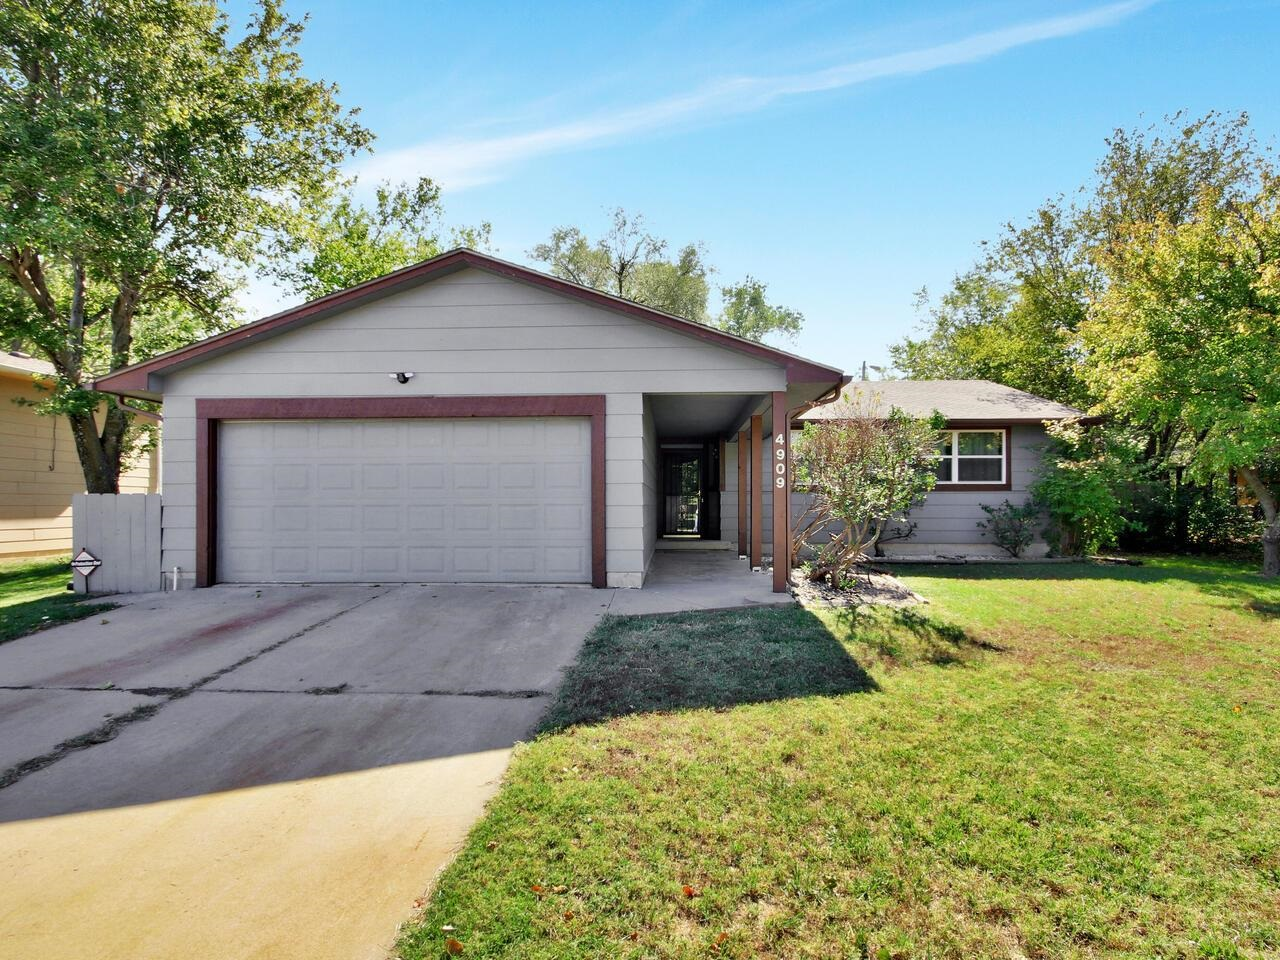 This is a rare find.  A solid well built and expertly maintained home located in a great neighborhoo